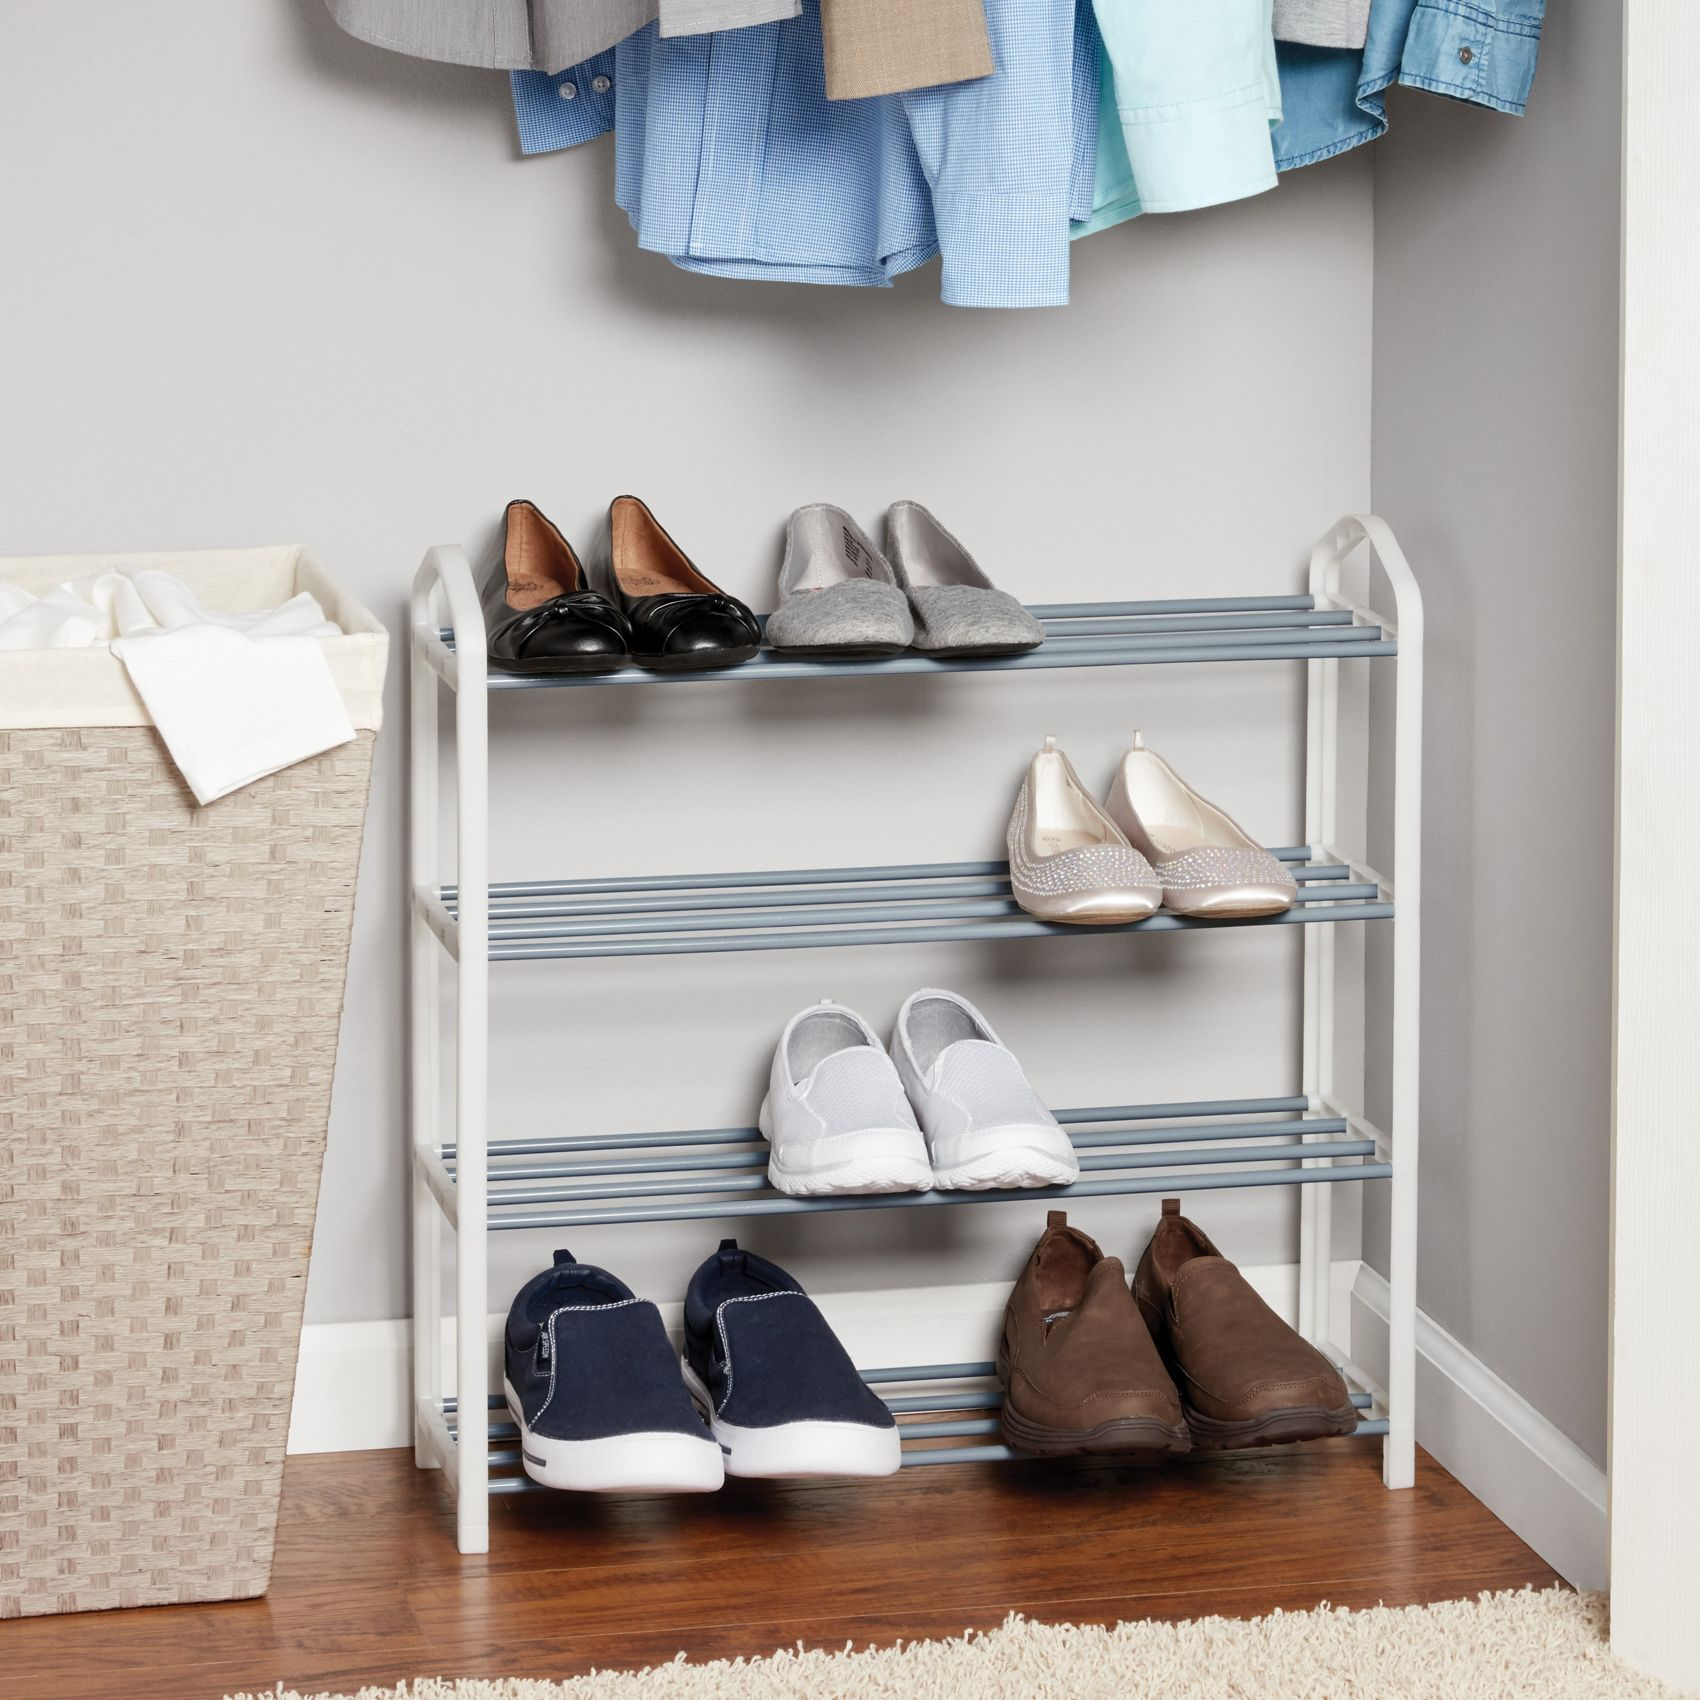 Mainstays 4Tier Shoe Rack, White with Steel Shelves